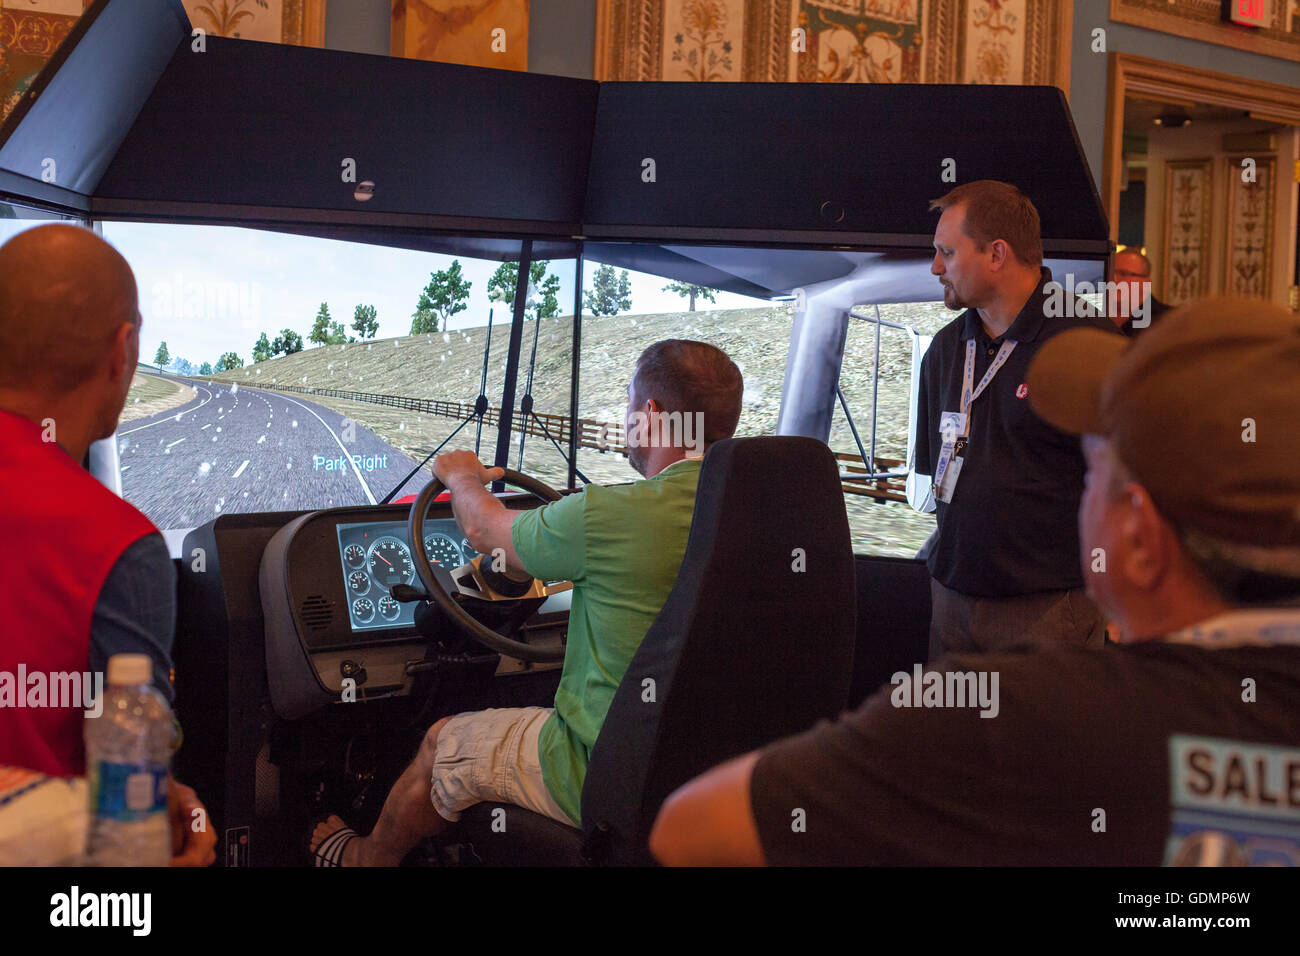 Las Vegas, Nevada - A delegate to the Teamsters Union convention drives a truck-driving simulator. - Stock Image